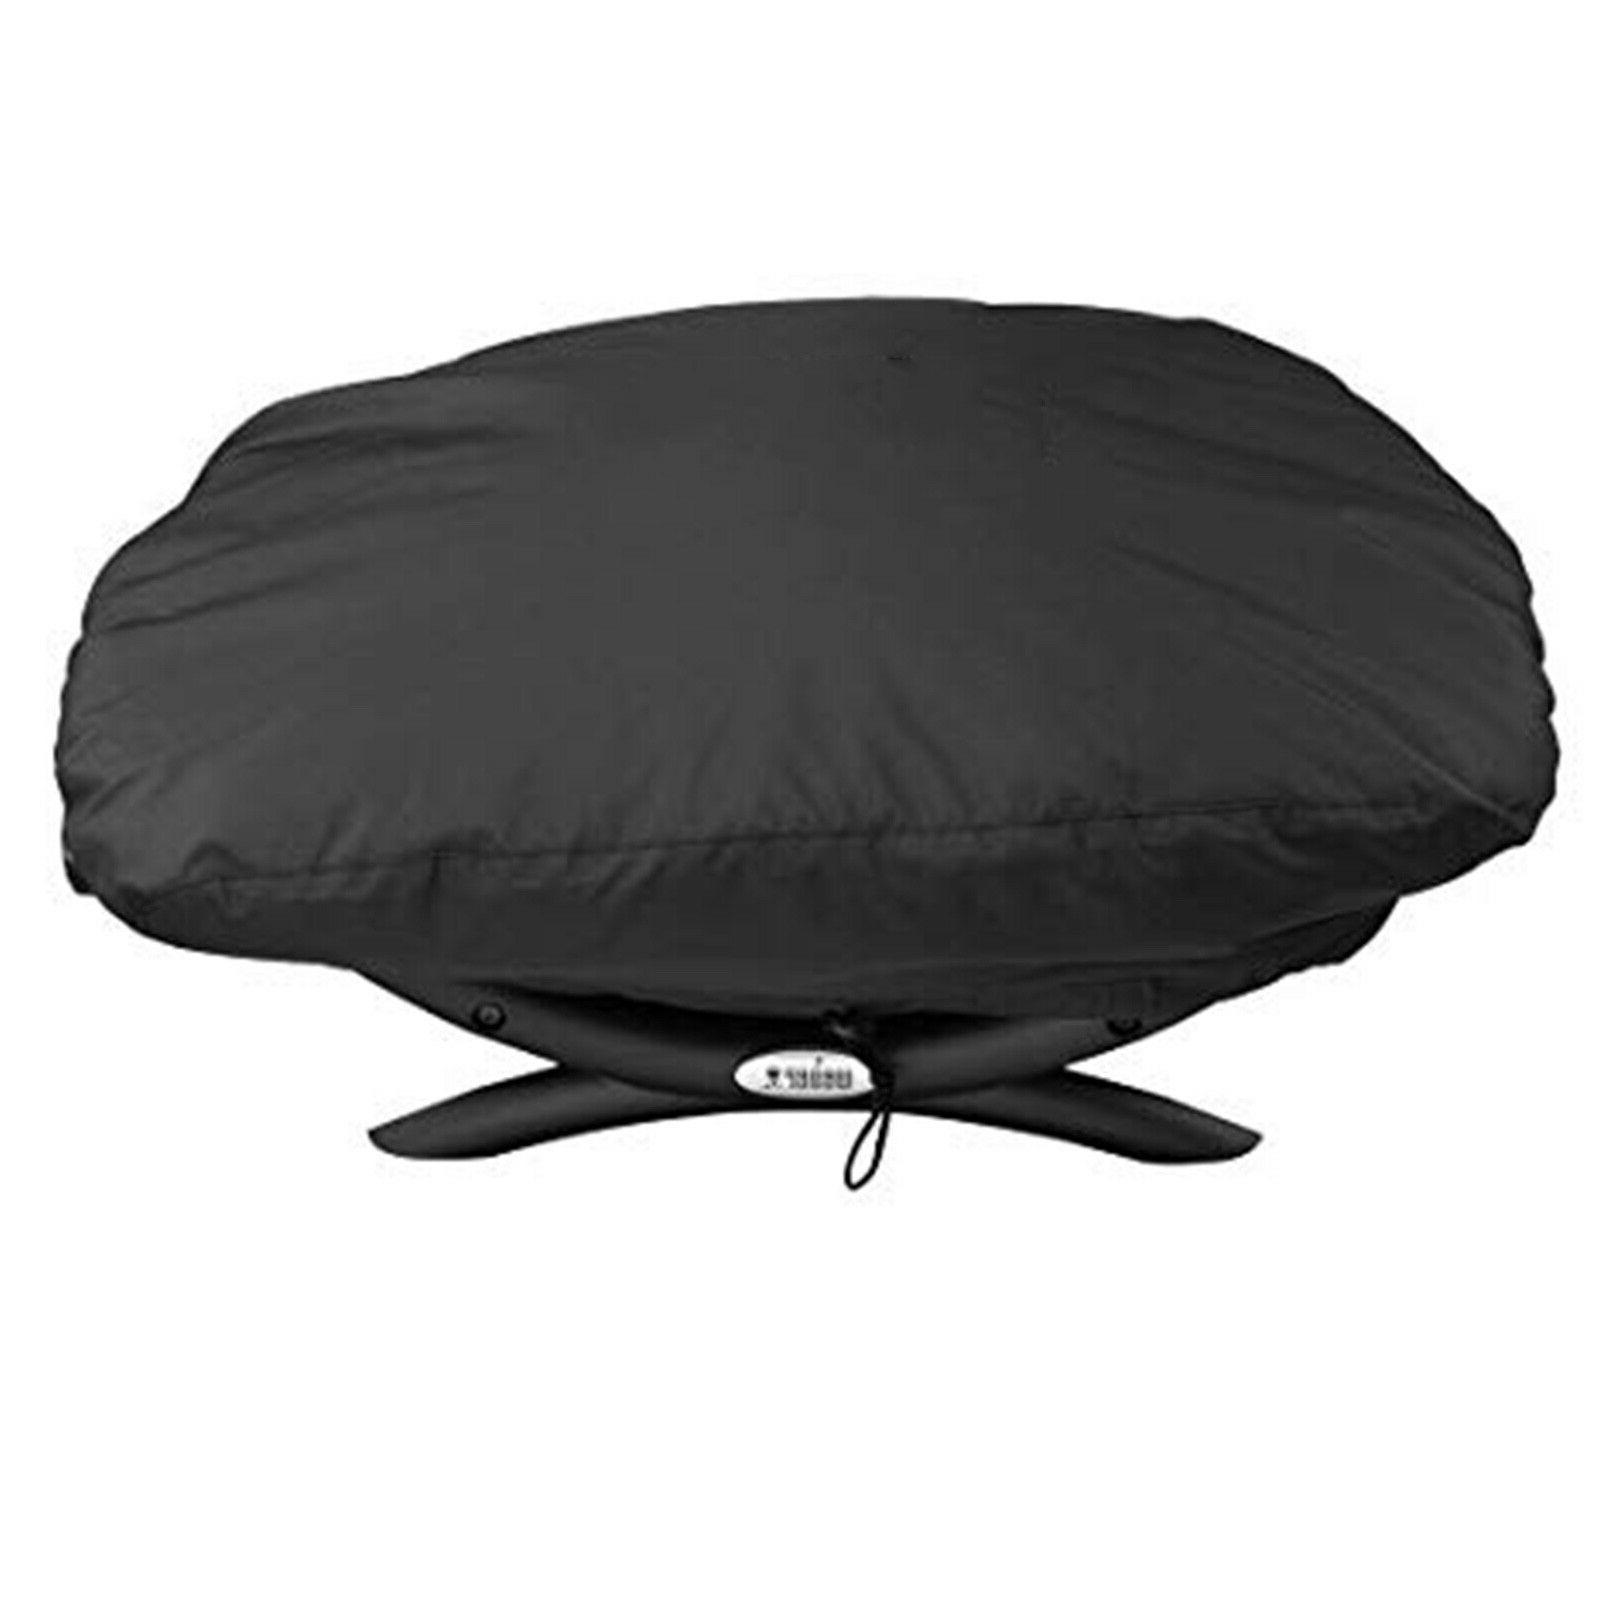 weber gas grill cover protector q 100